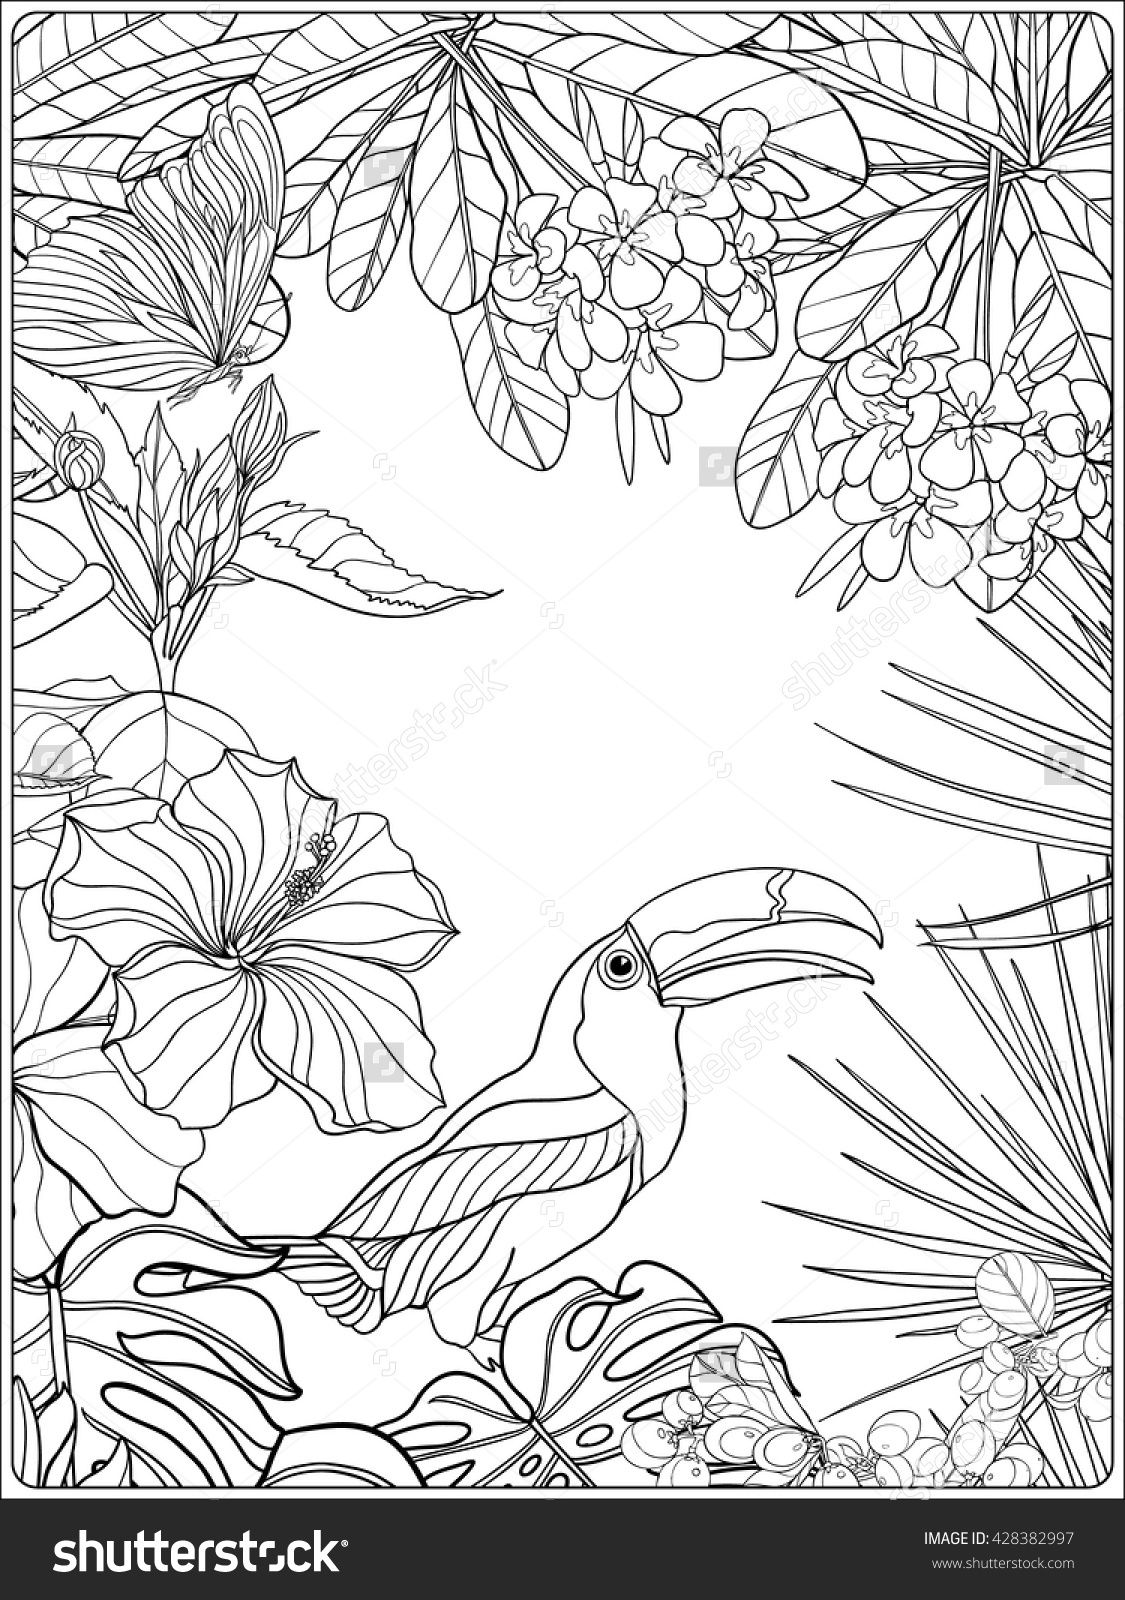 tropical coloring sheets tropical flower luau coloring page woo jr kids activities sheets coloring tropical